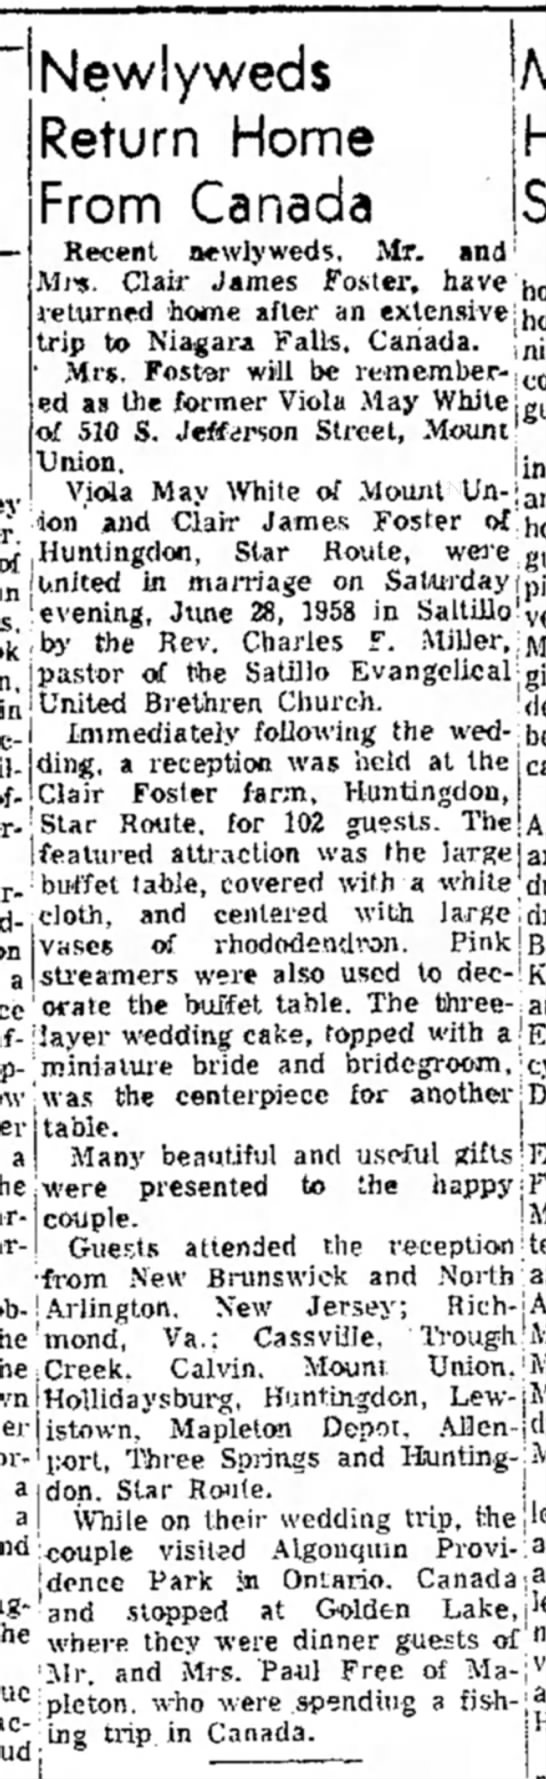 Clair James Foster-newlywed-TDN-p.12-23 Jul 1958 - Newlyweds Return Home From Canada Recent...